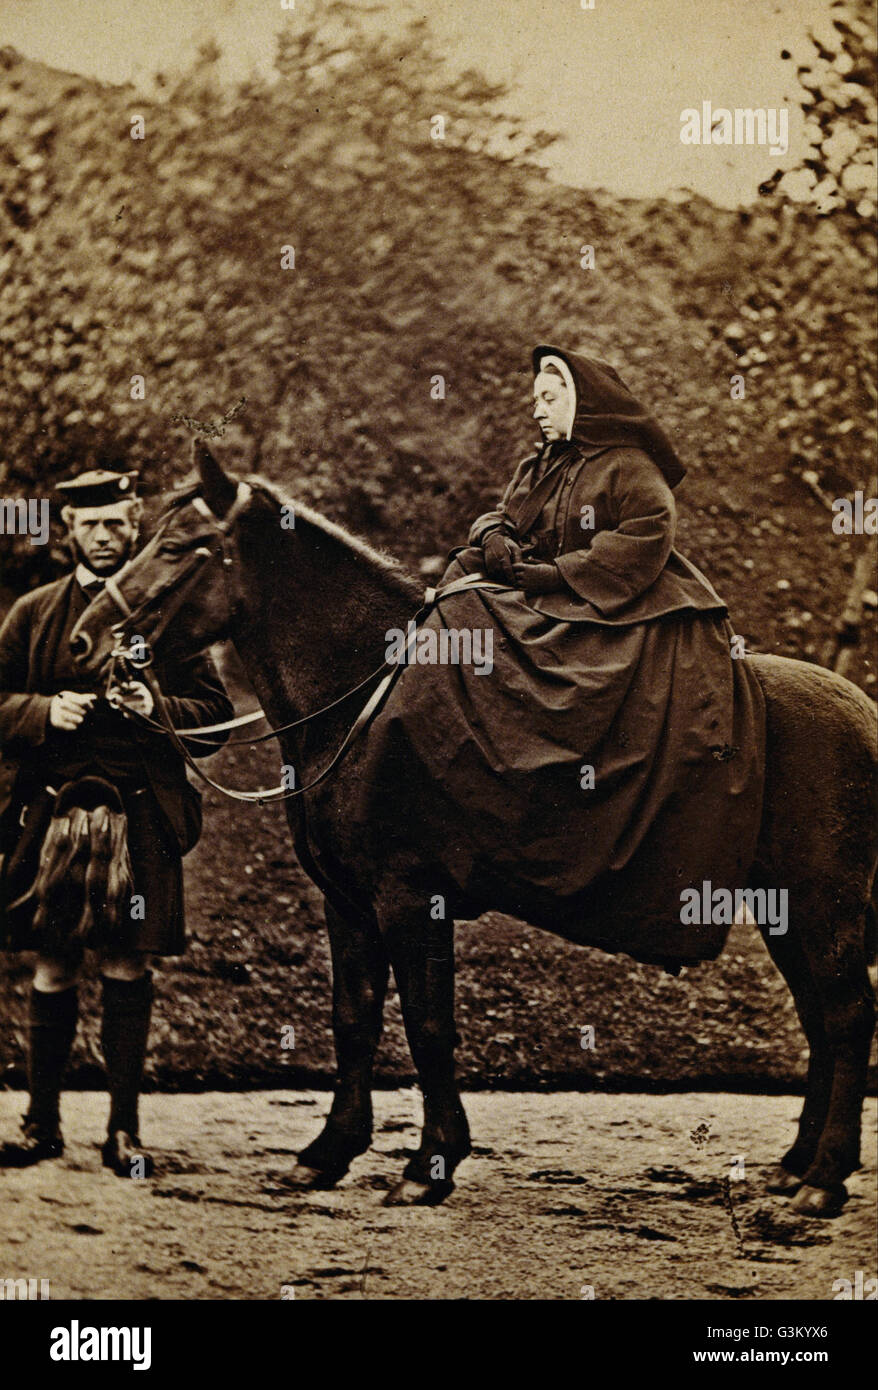 George Washington Wilson - Queen Victoria on 'Fyvie' with John Brown at Balmoral  - - Stock Image